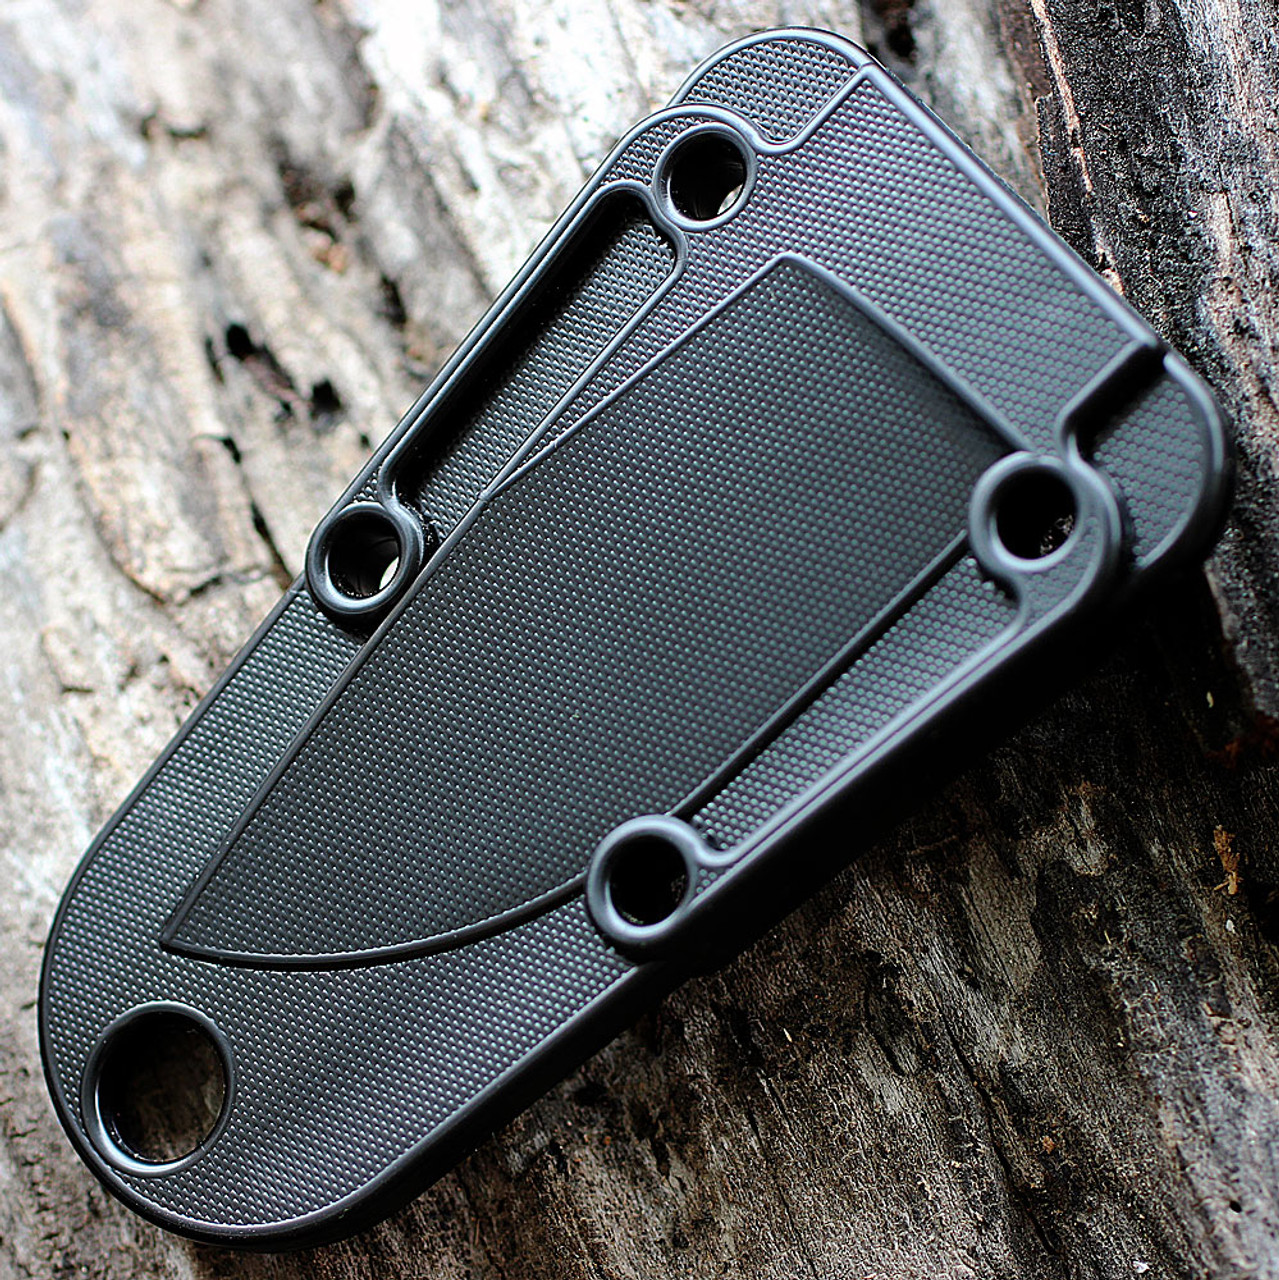 ESEE Izula Tactical Gray with Black G10 Handles